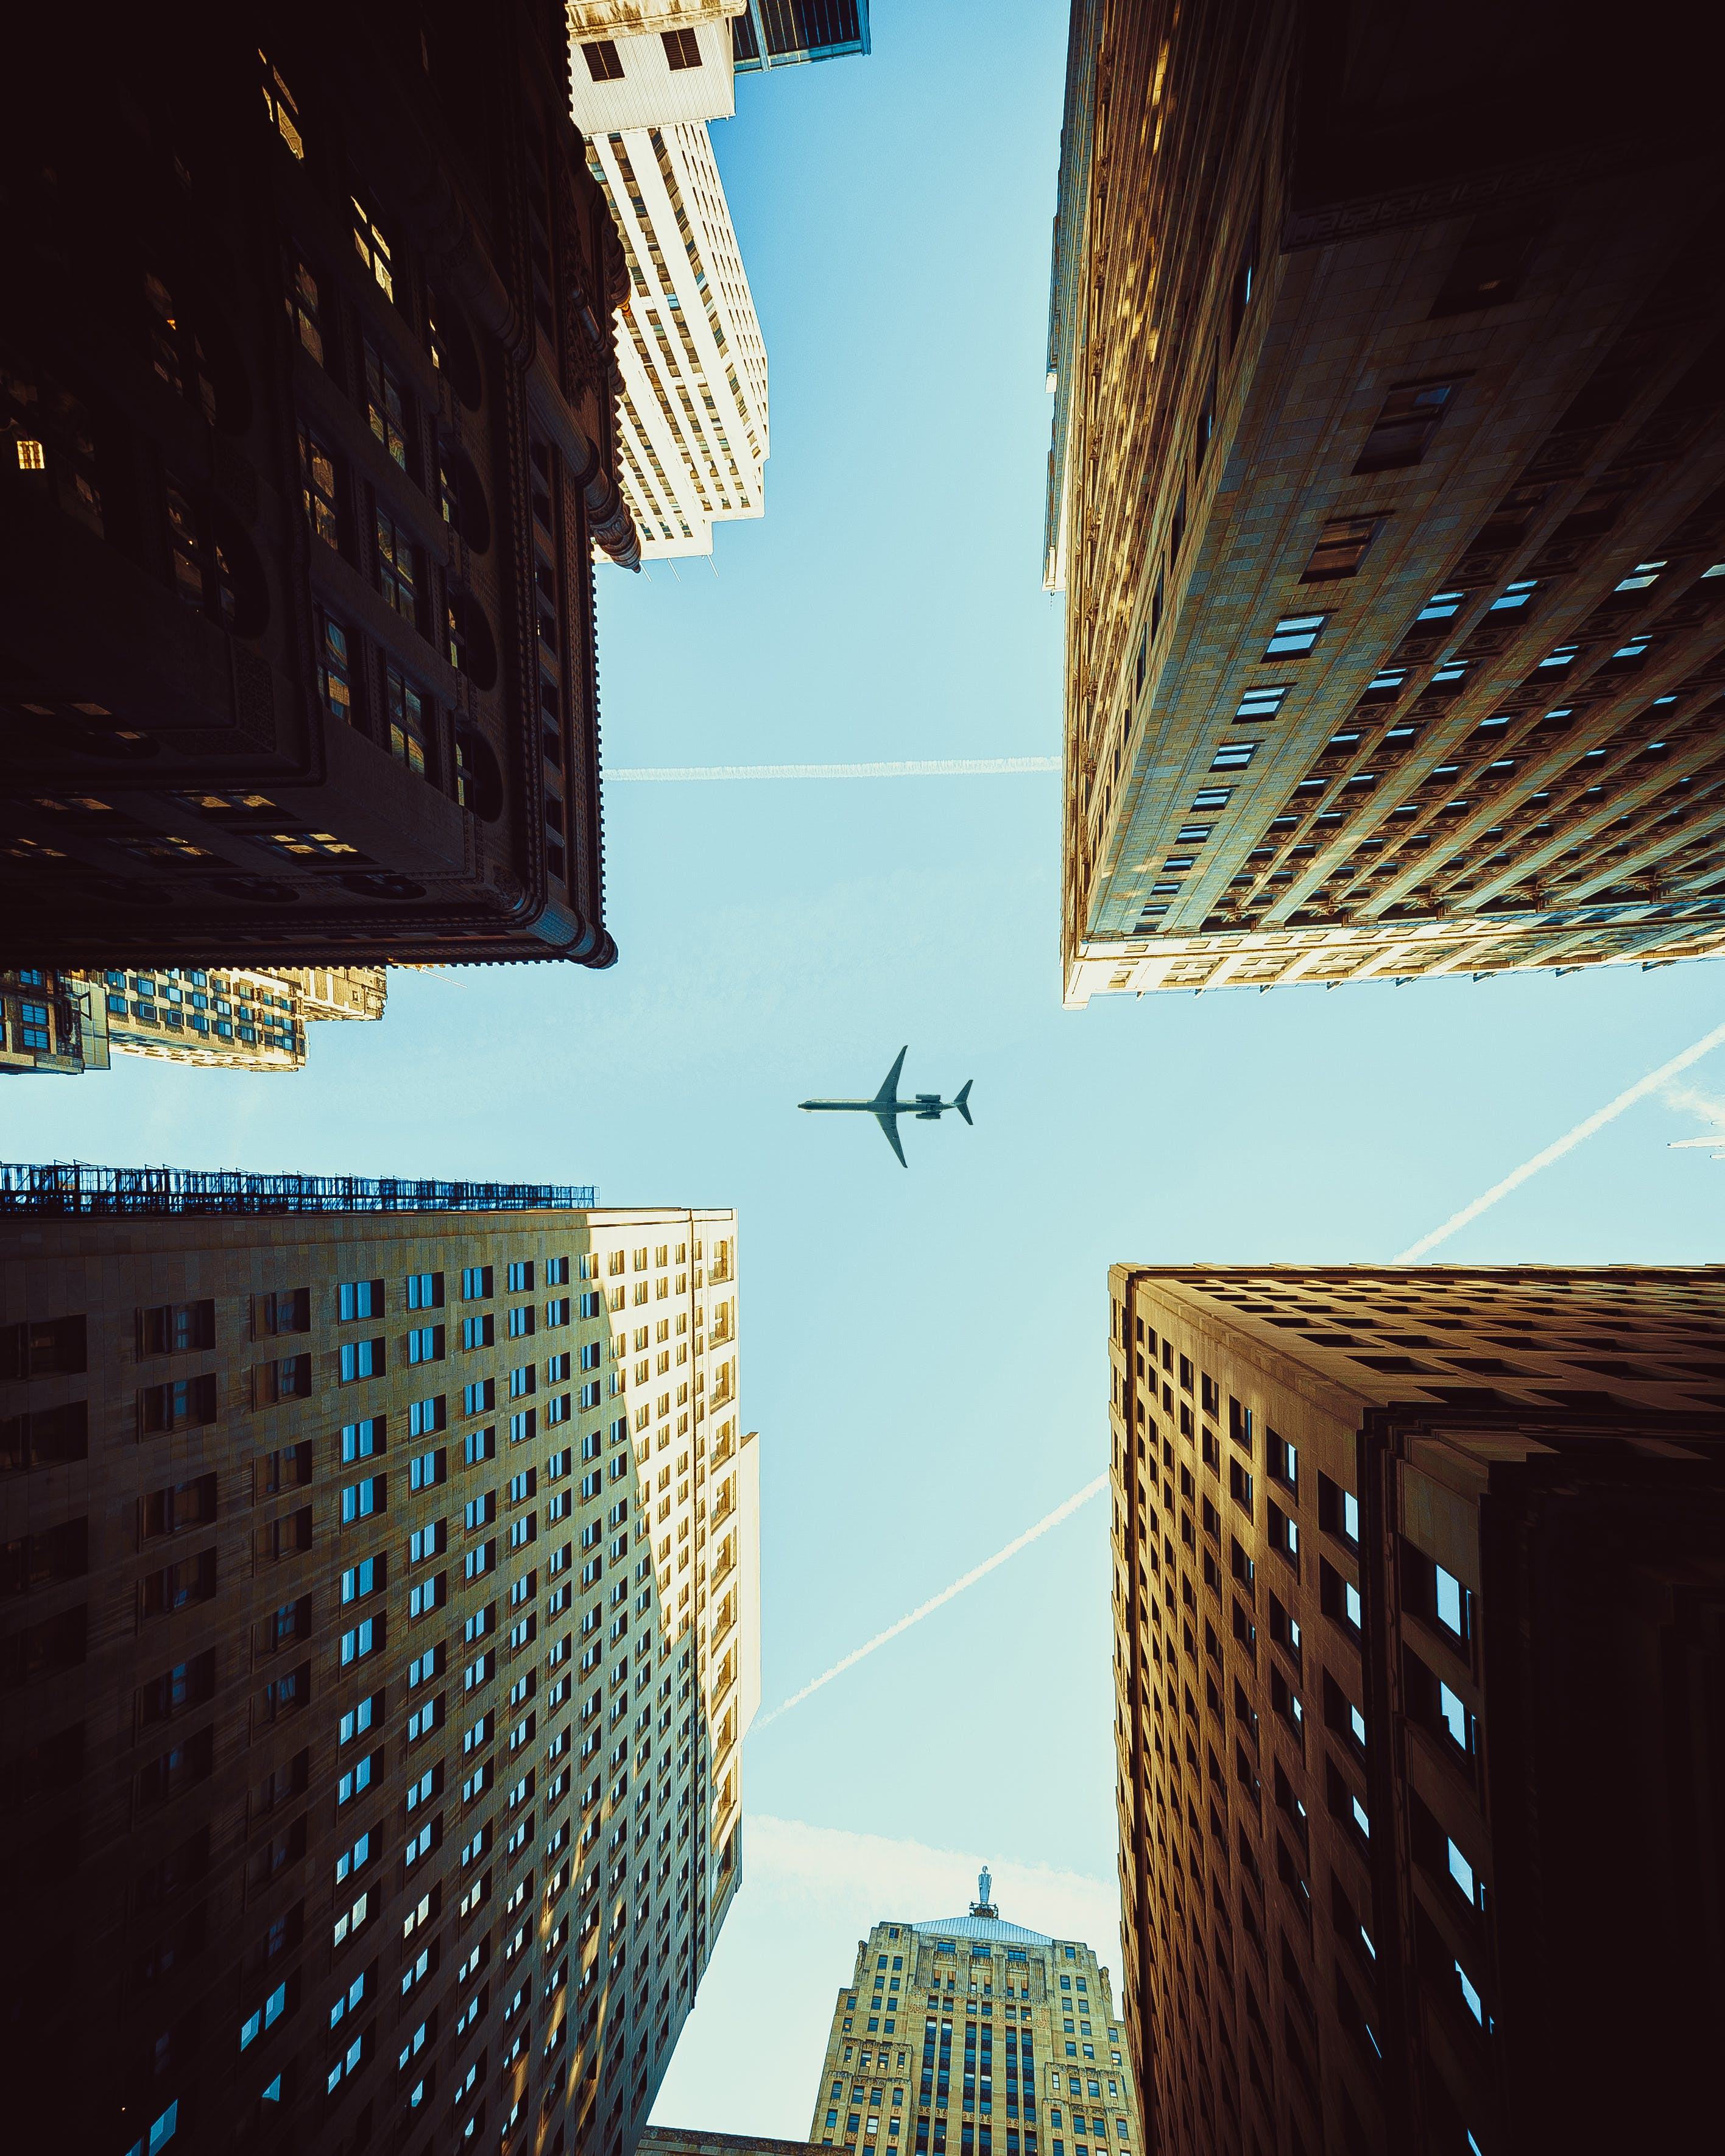 Worm's Eye View Photography Of Airplane And Buildings